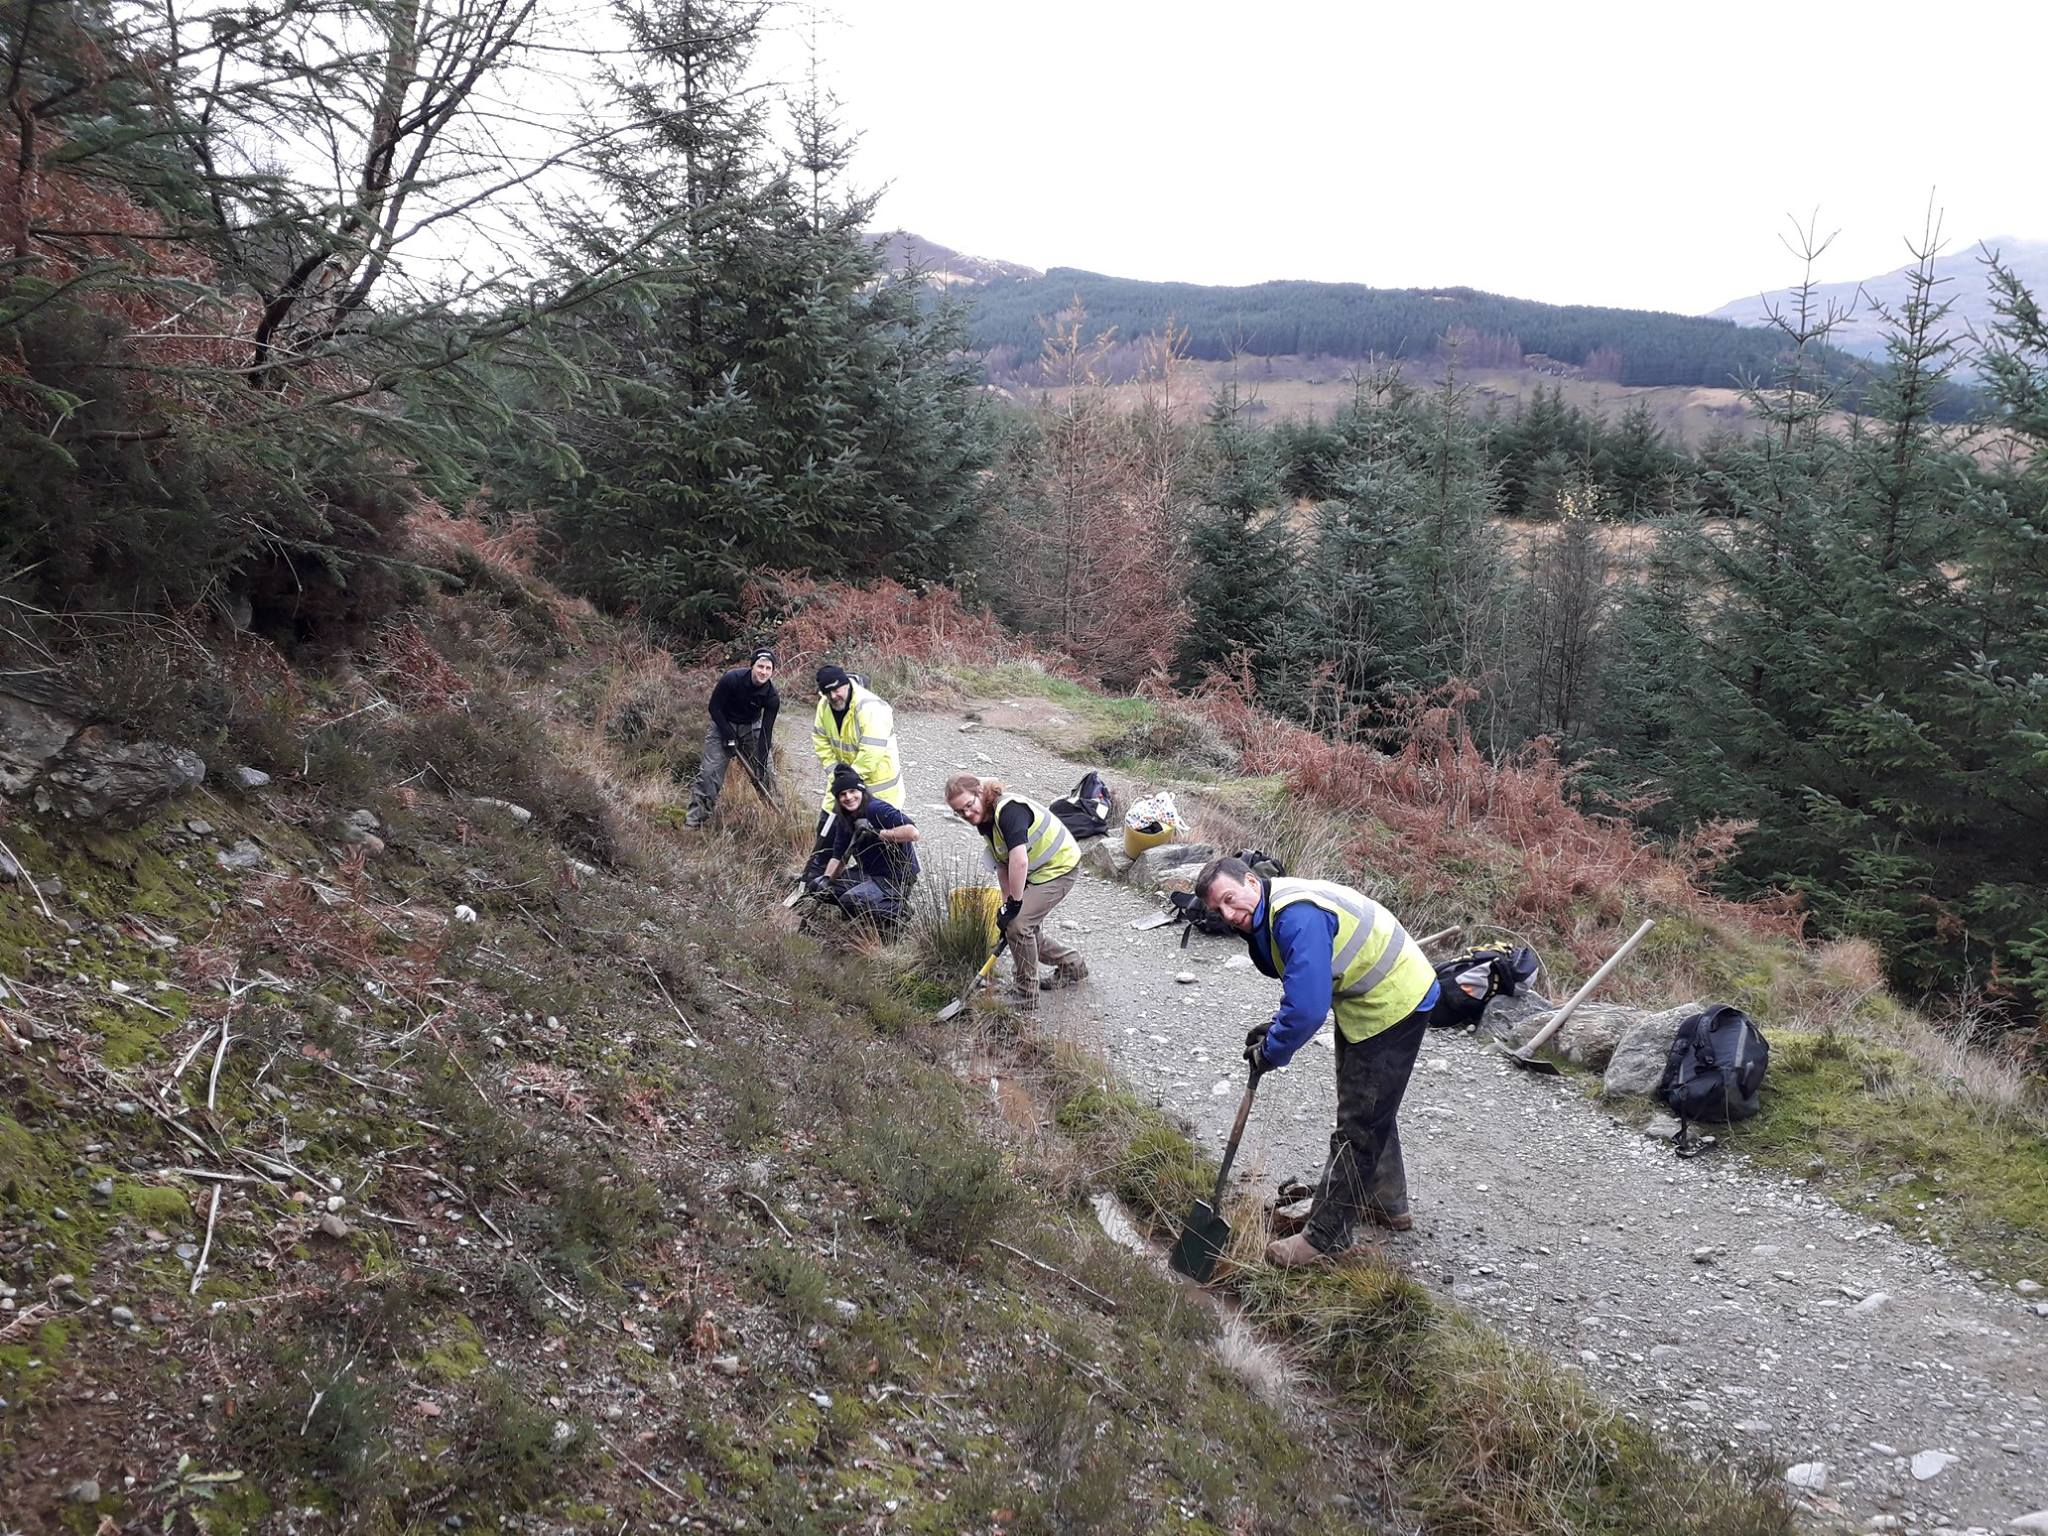 Volunteers from The Mountains and The People repairing mountain paths.